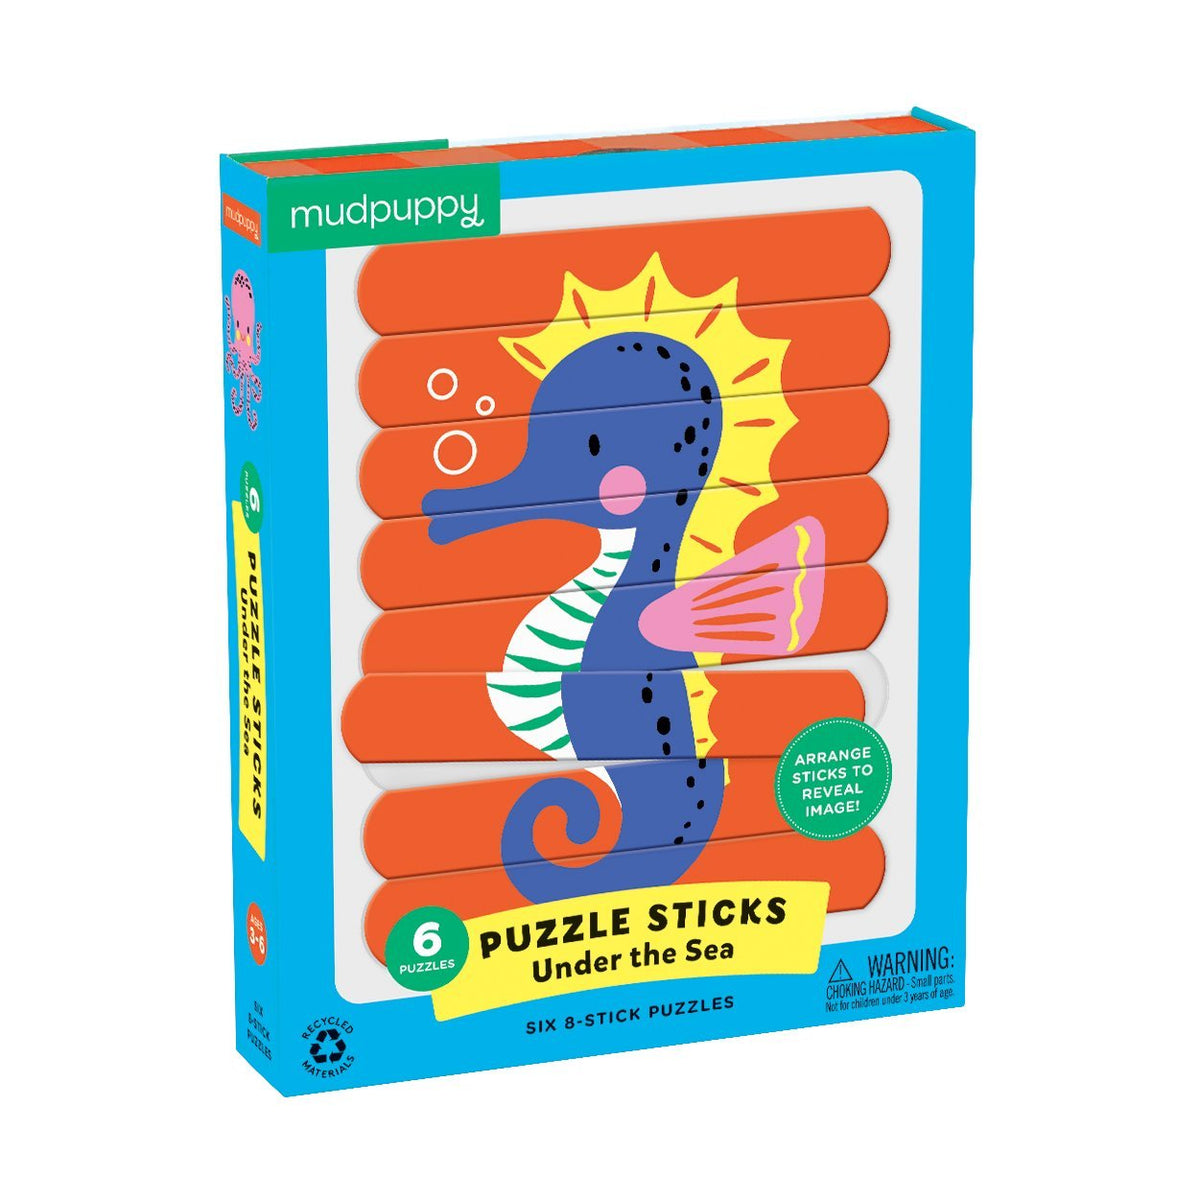 Puzzle Sticks | Under the Sea